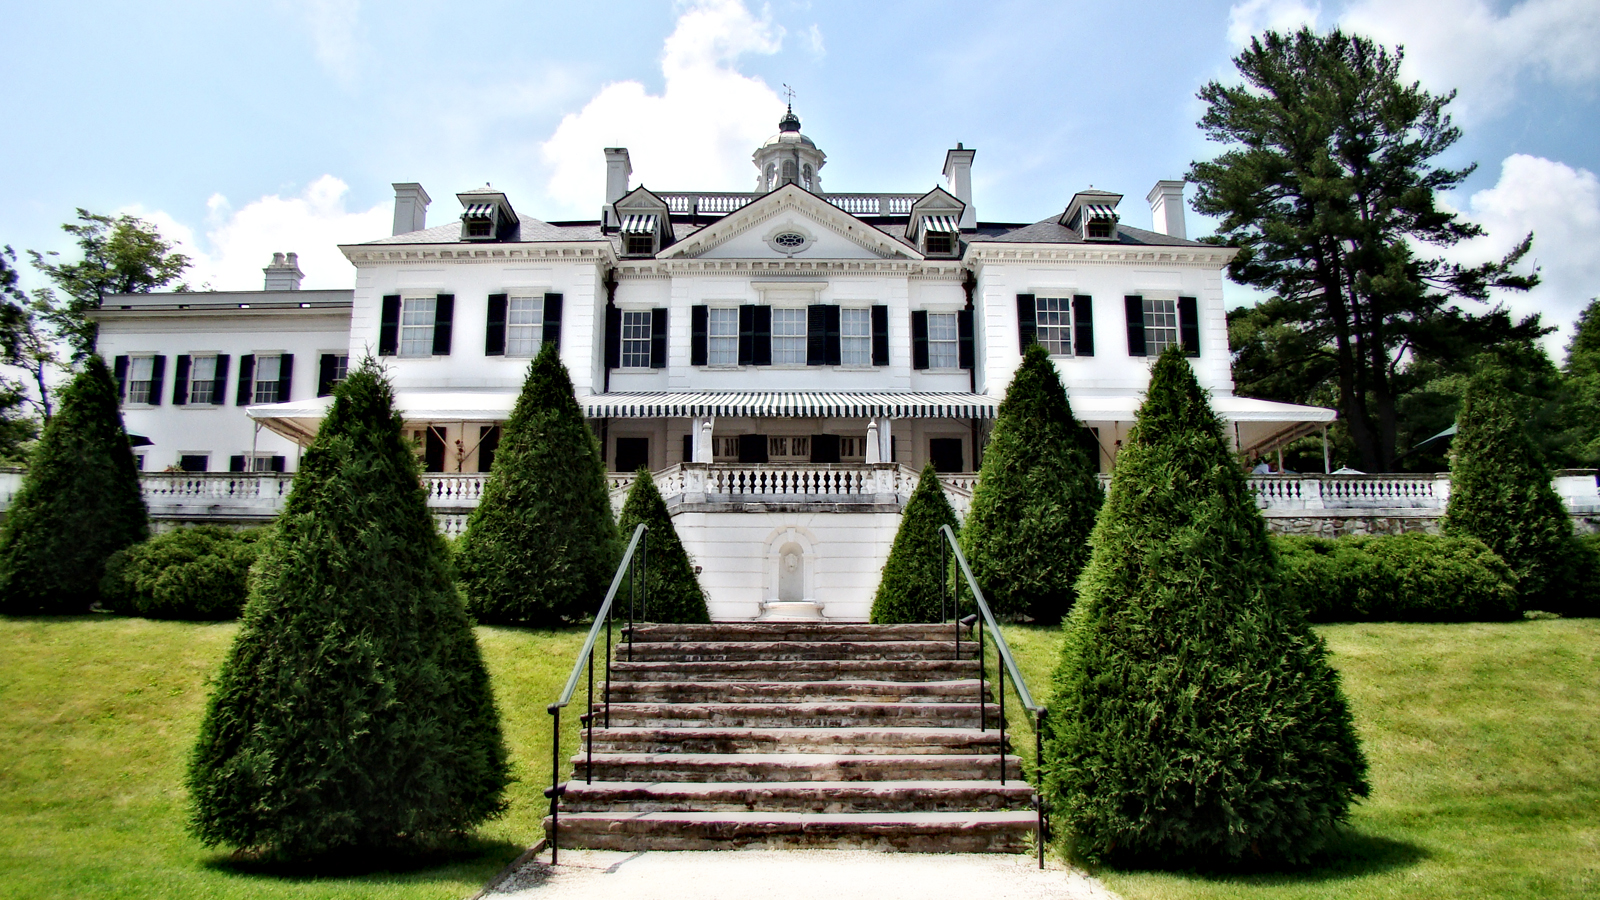 A front view of the Mount from the Gardens' footpath. Edith Wharton Estate & Gardens. Lenox, MA